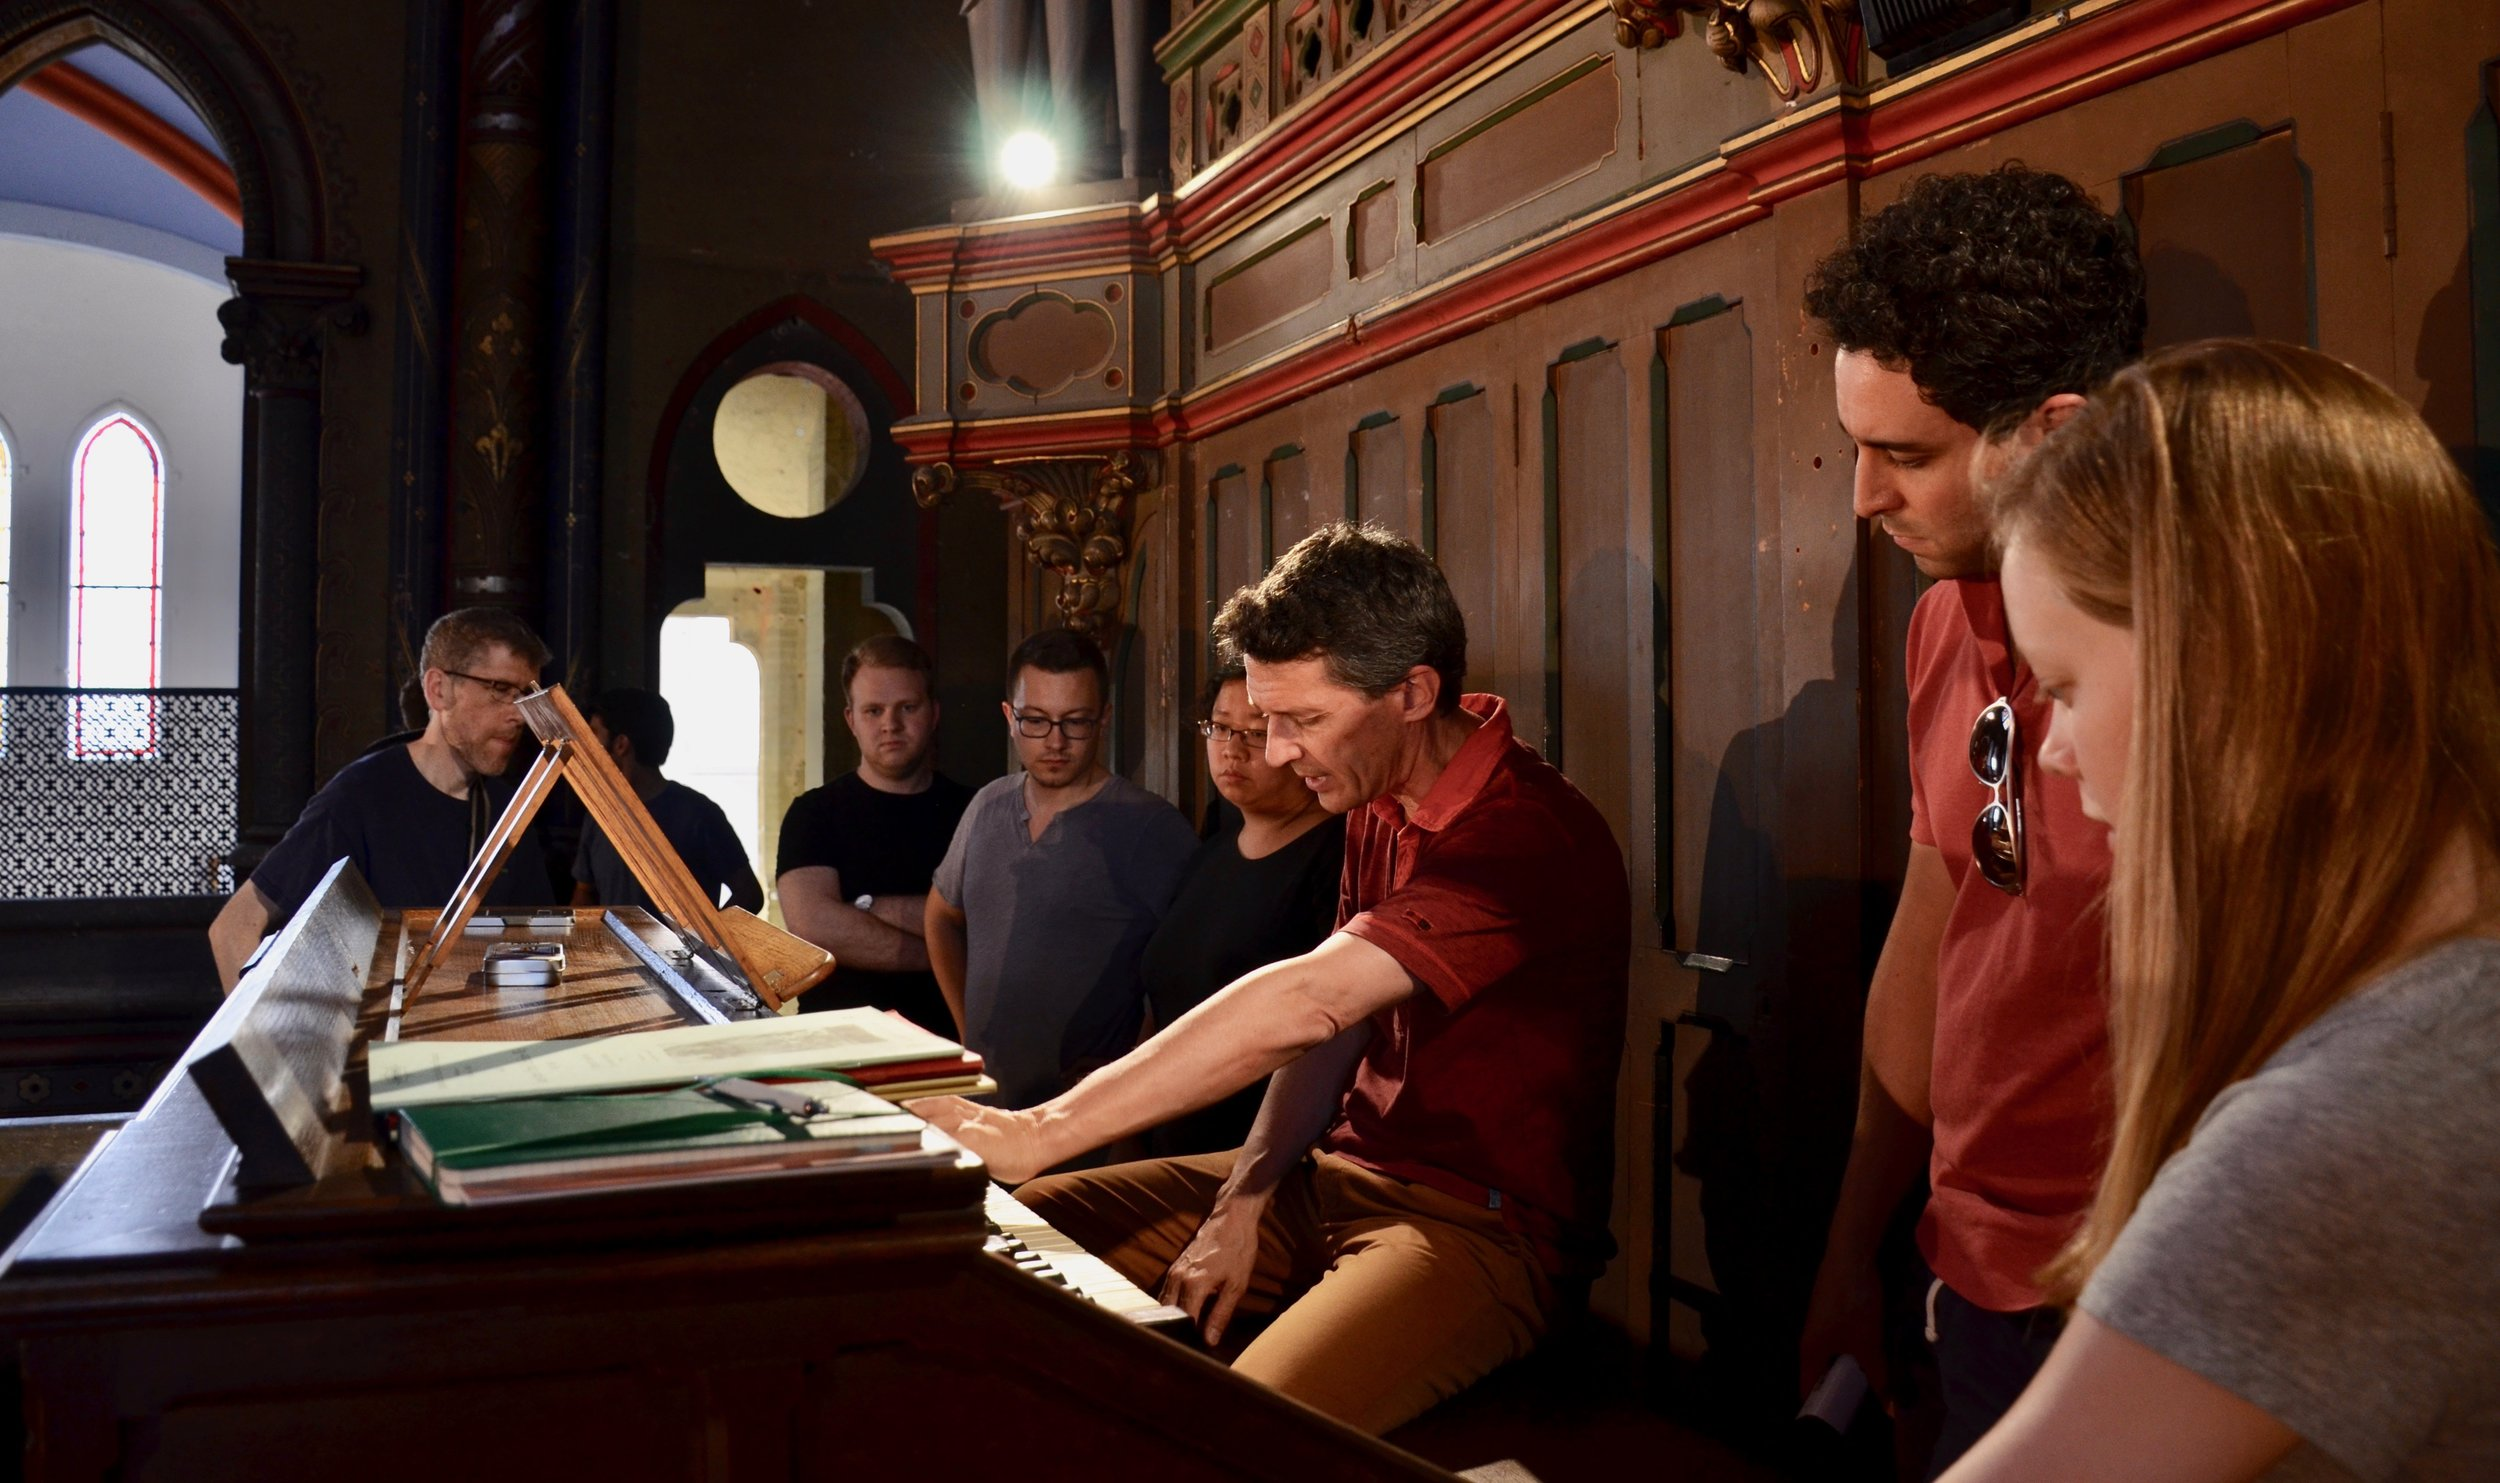 Yves Rechsteiner demonstrating the Cavaillé-Coll instrument in the Gésu Church, Toulouse.